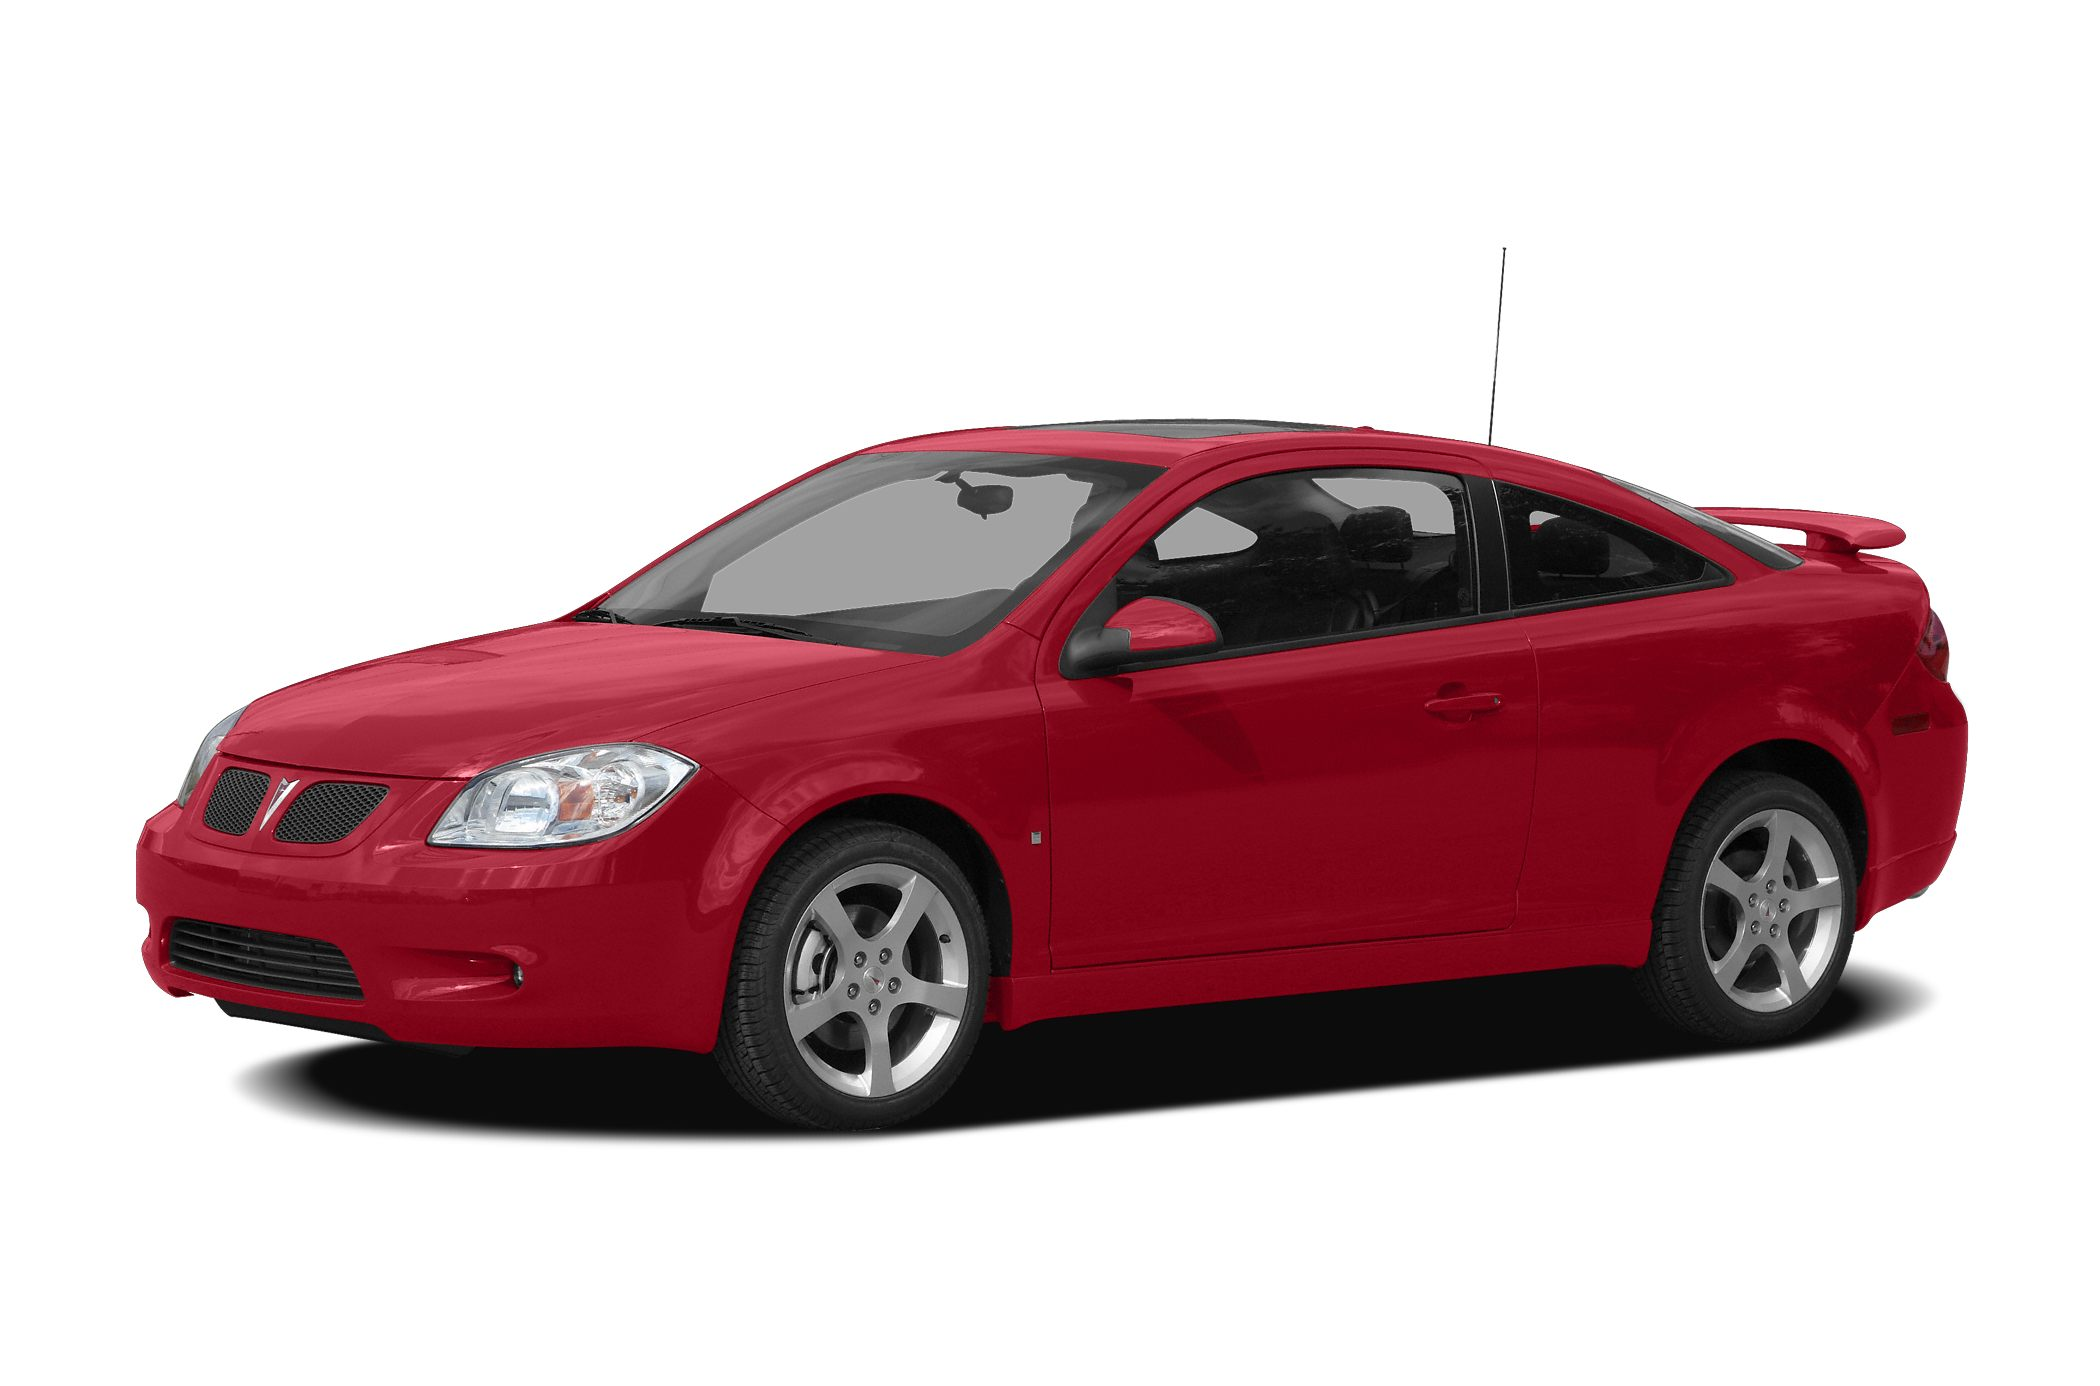 2007 Pontiac G5 Coupe for sale in Pottsville for $6,283 with 103,130 miles